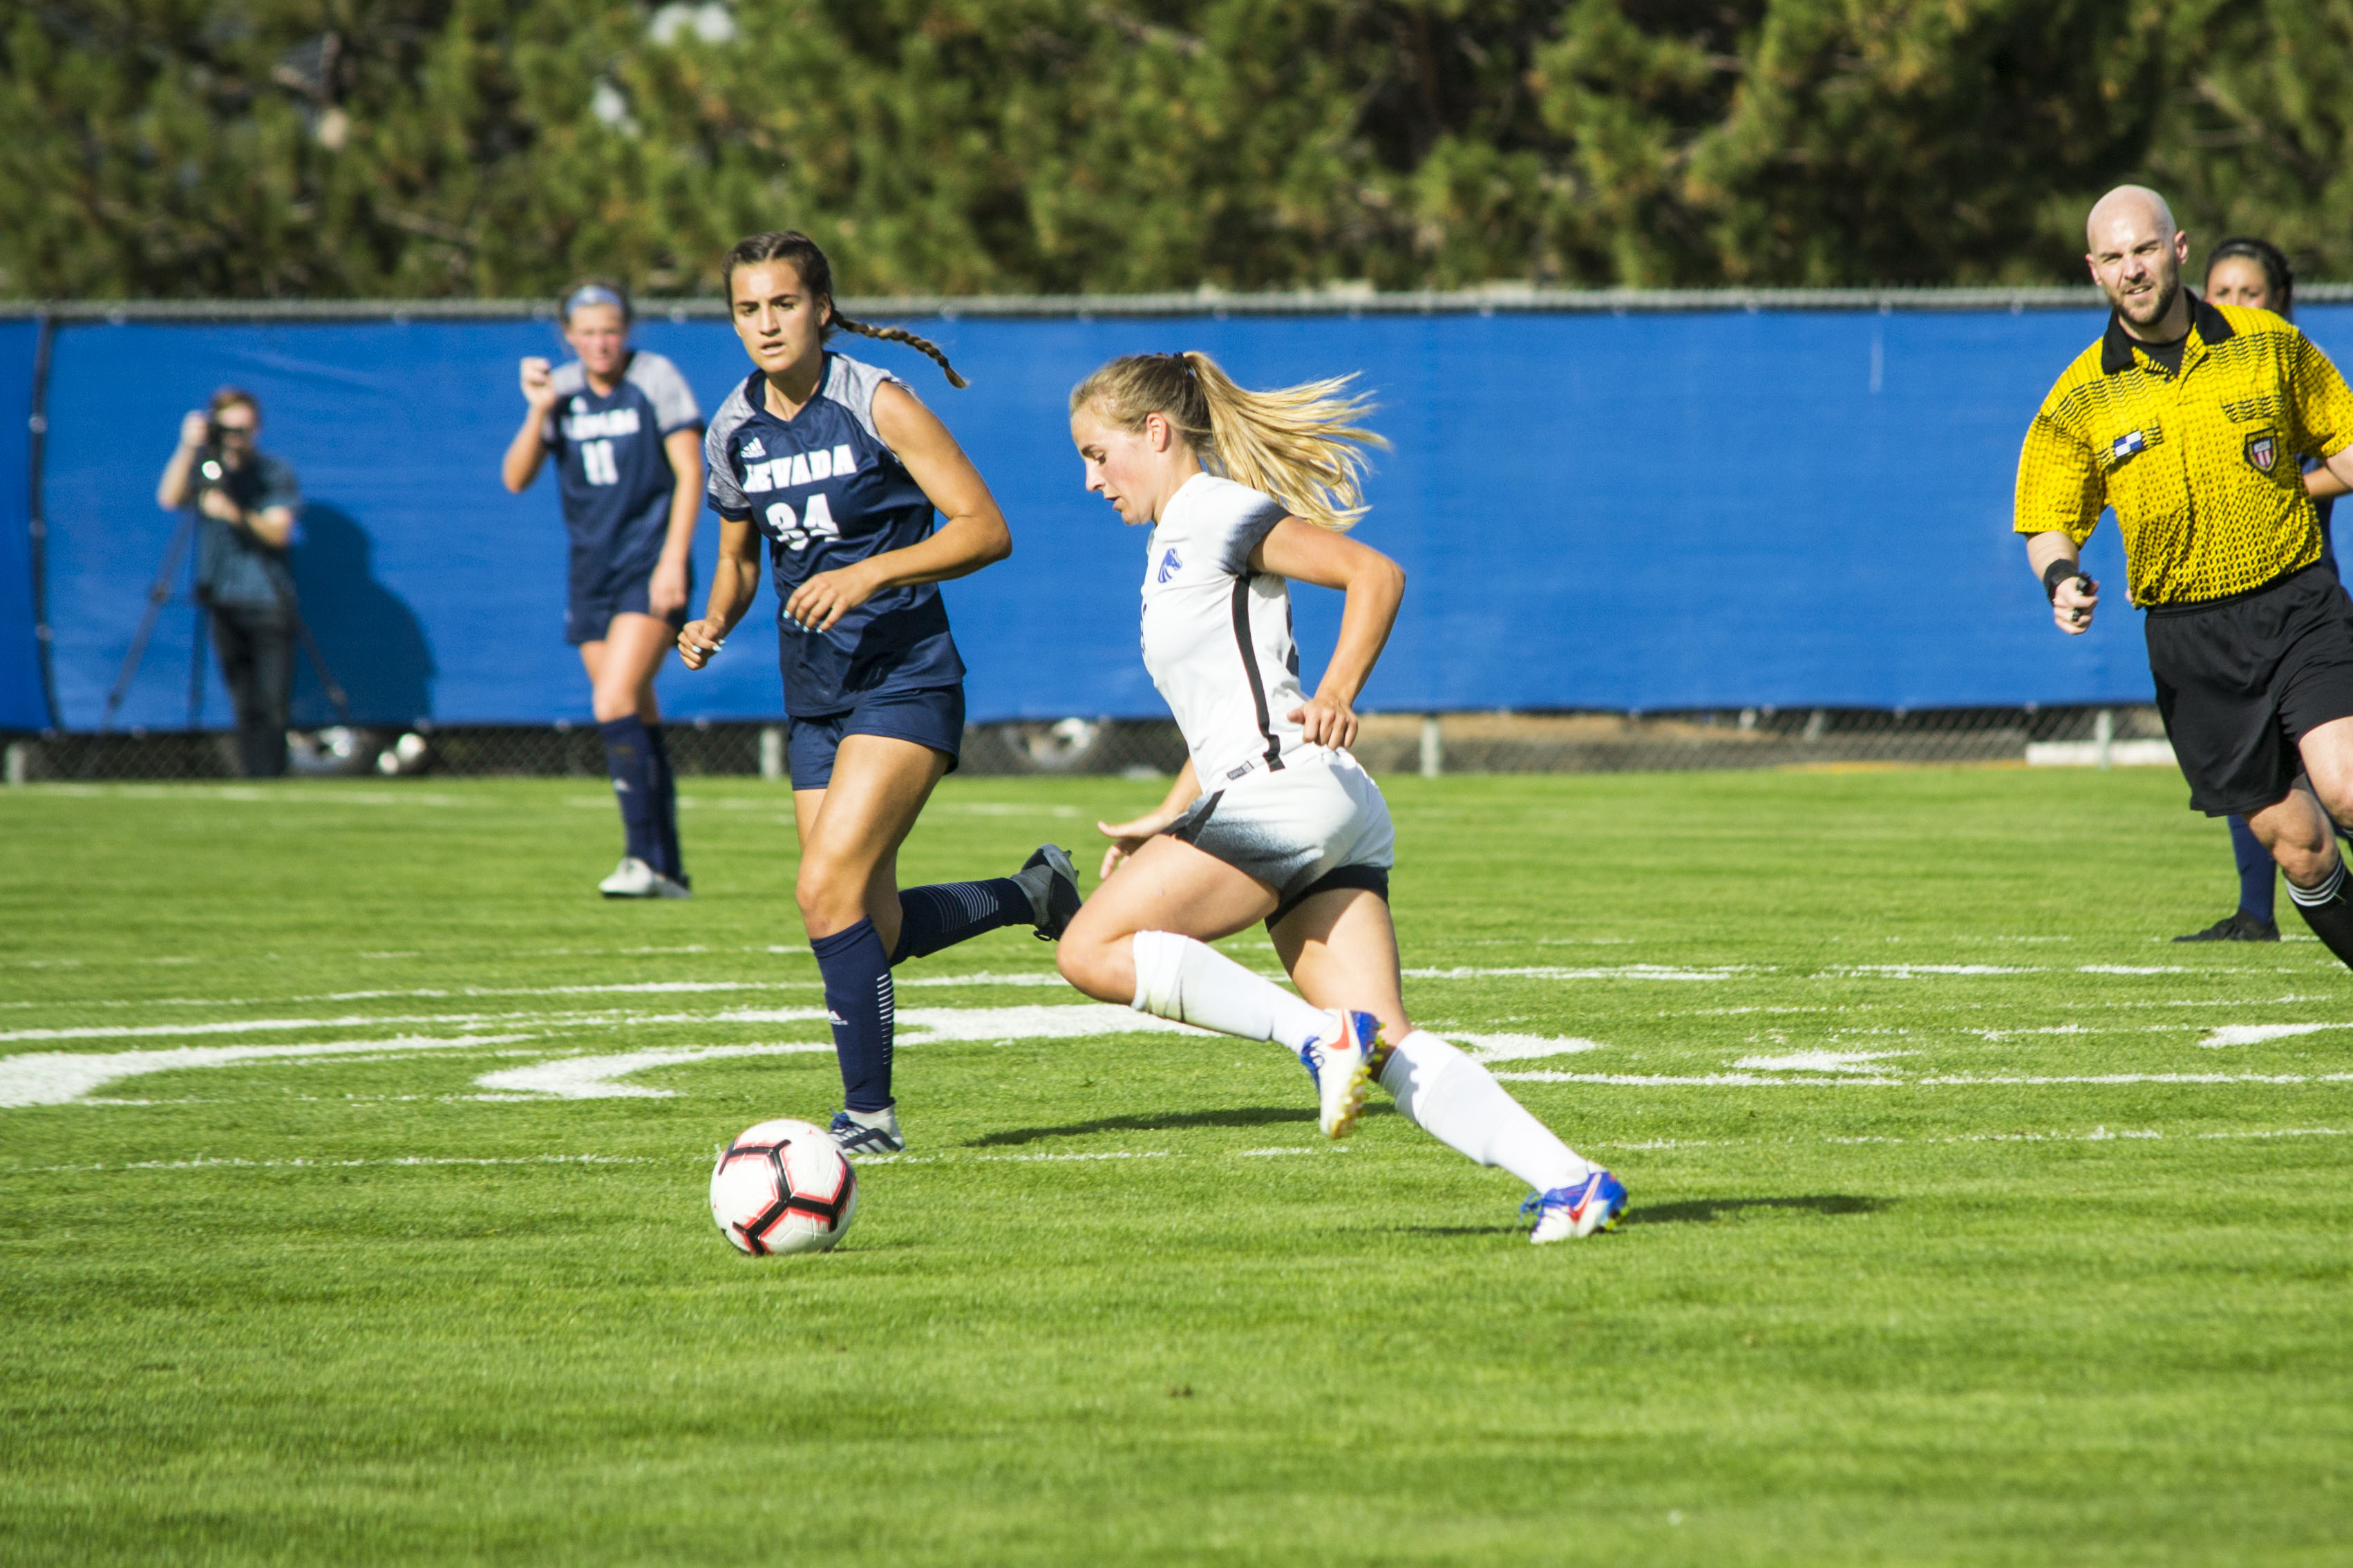 The Boise State Soccer Team played the Nevada Wolf Pack Friday in Boise. The Broncos won 2-1. (Kristen McPeek Photo)